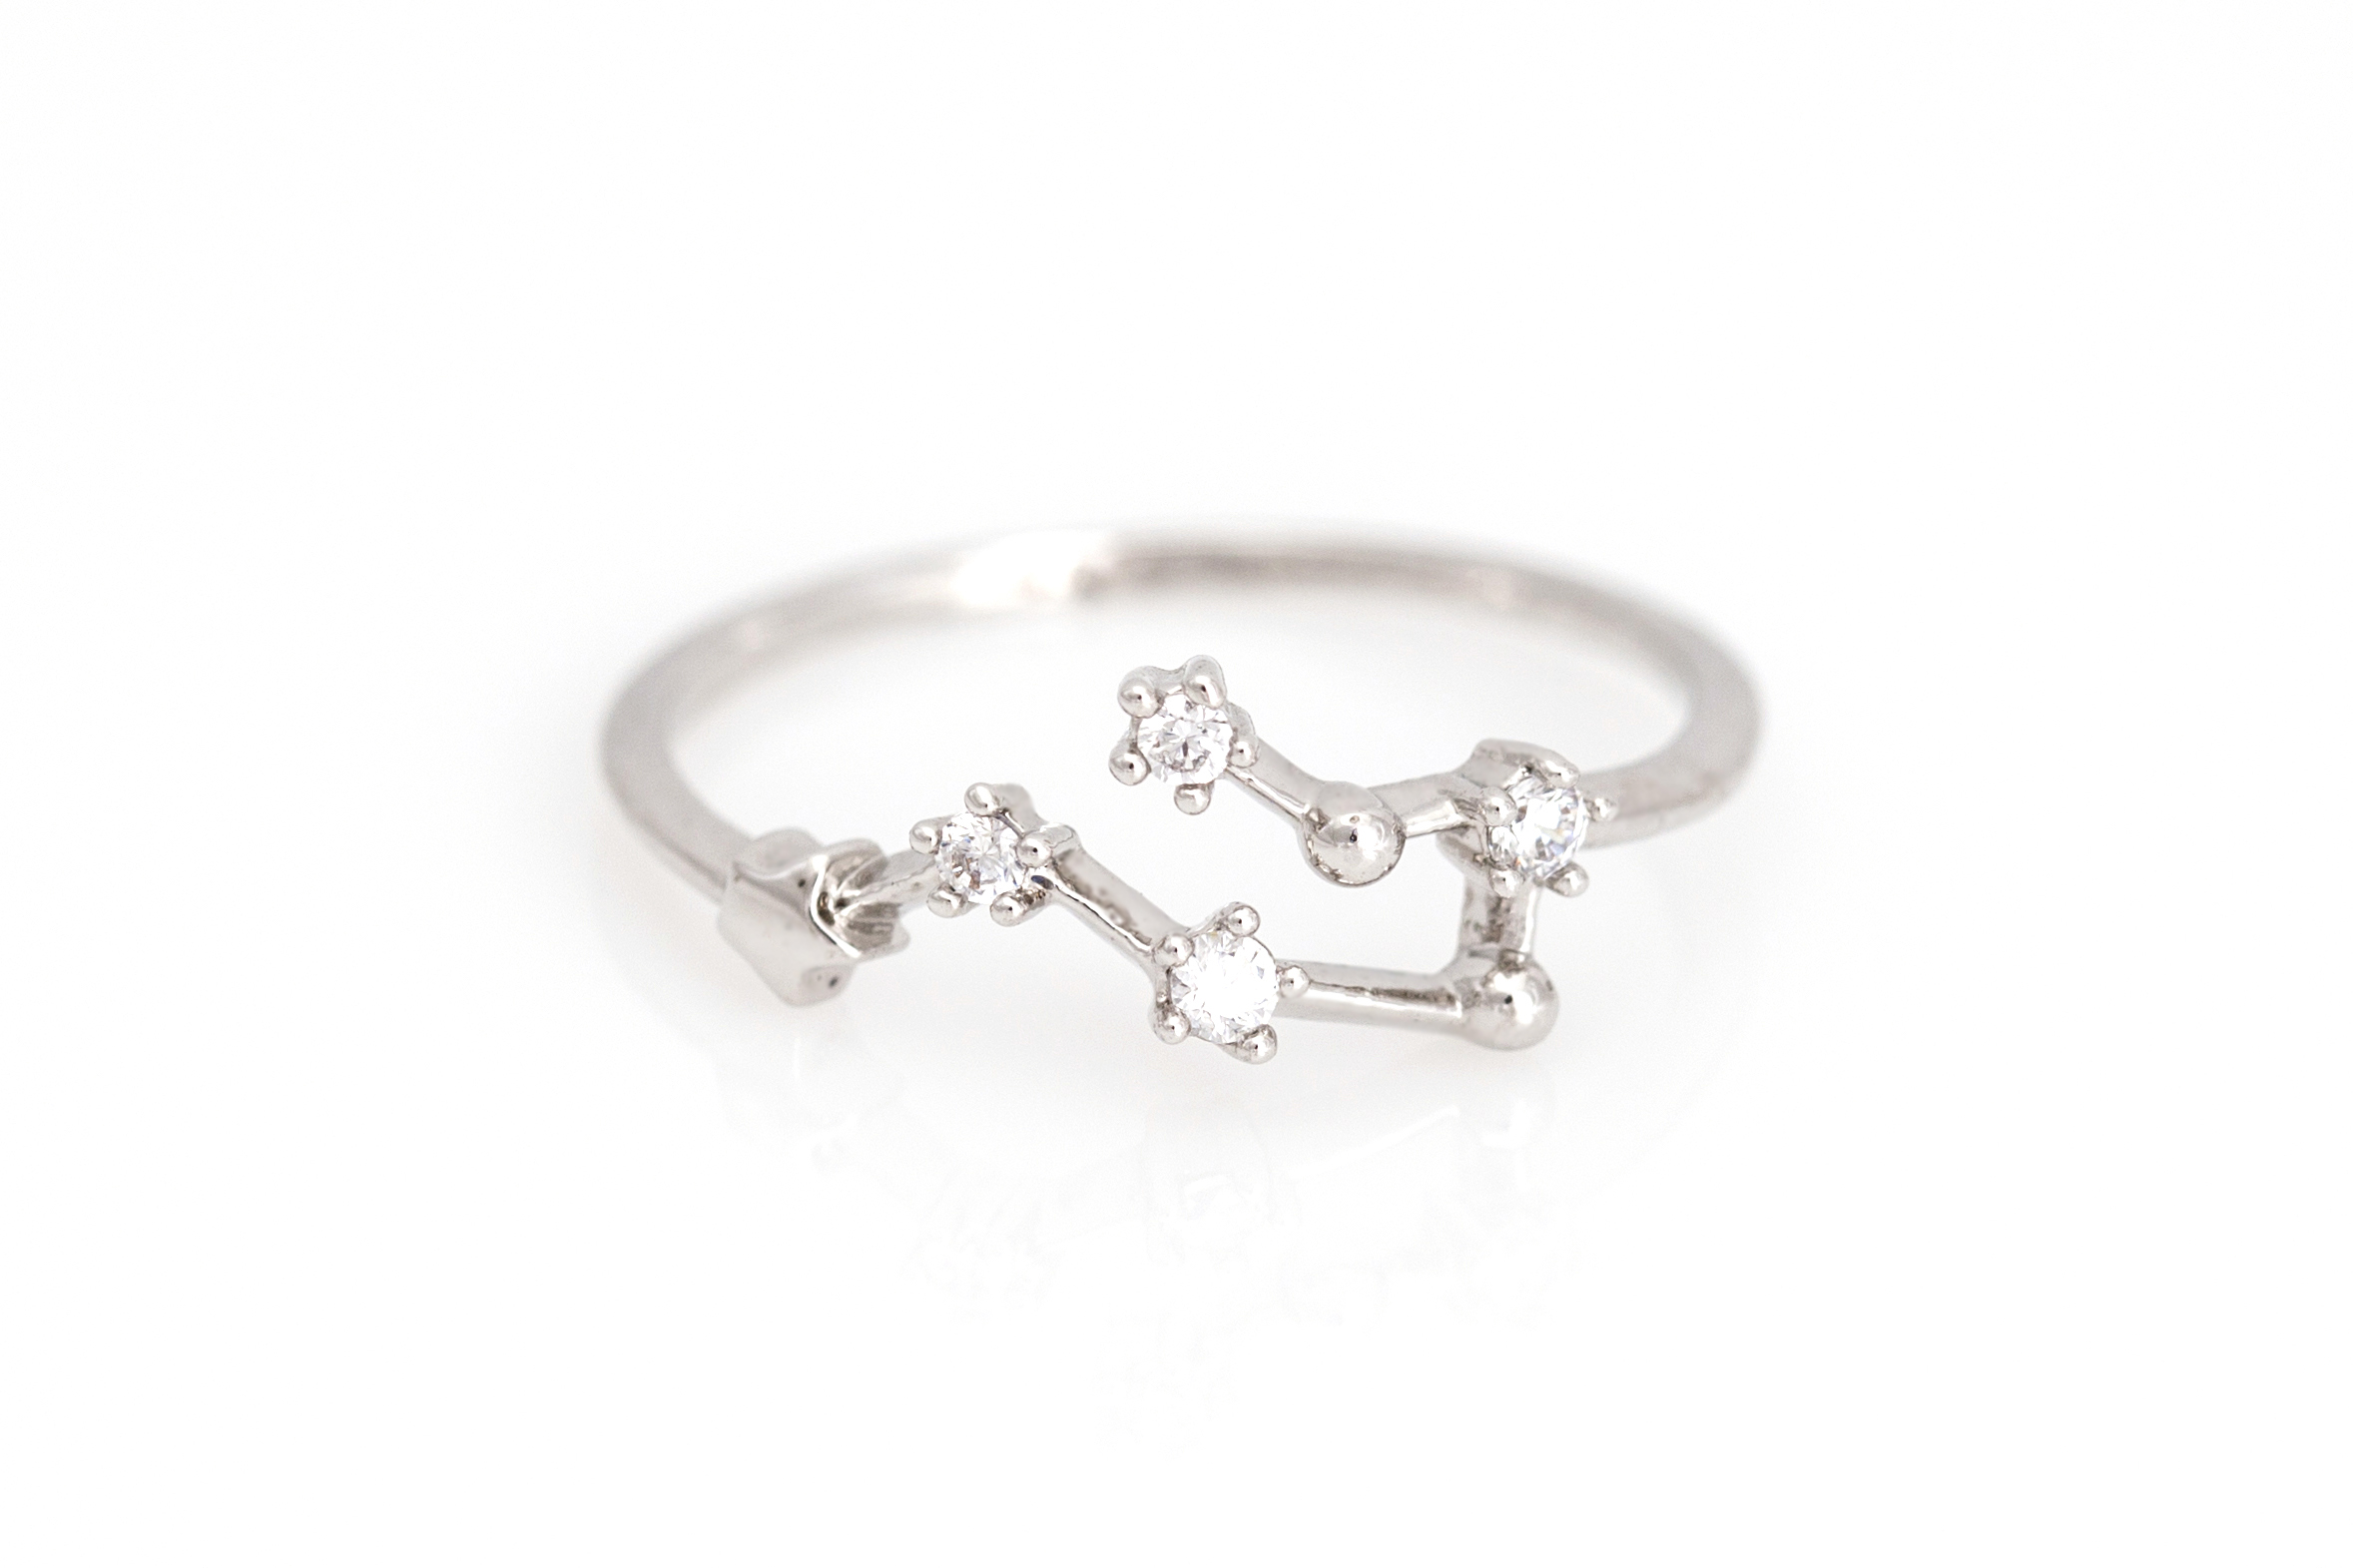 gemini of by baby engagement fine rings ring white gold diamond lovely beautiful jewellery